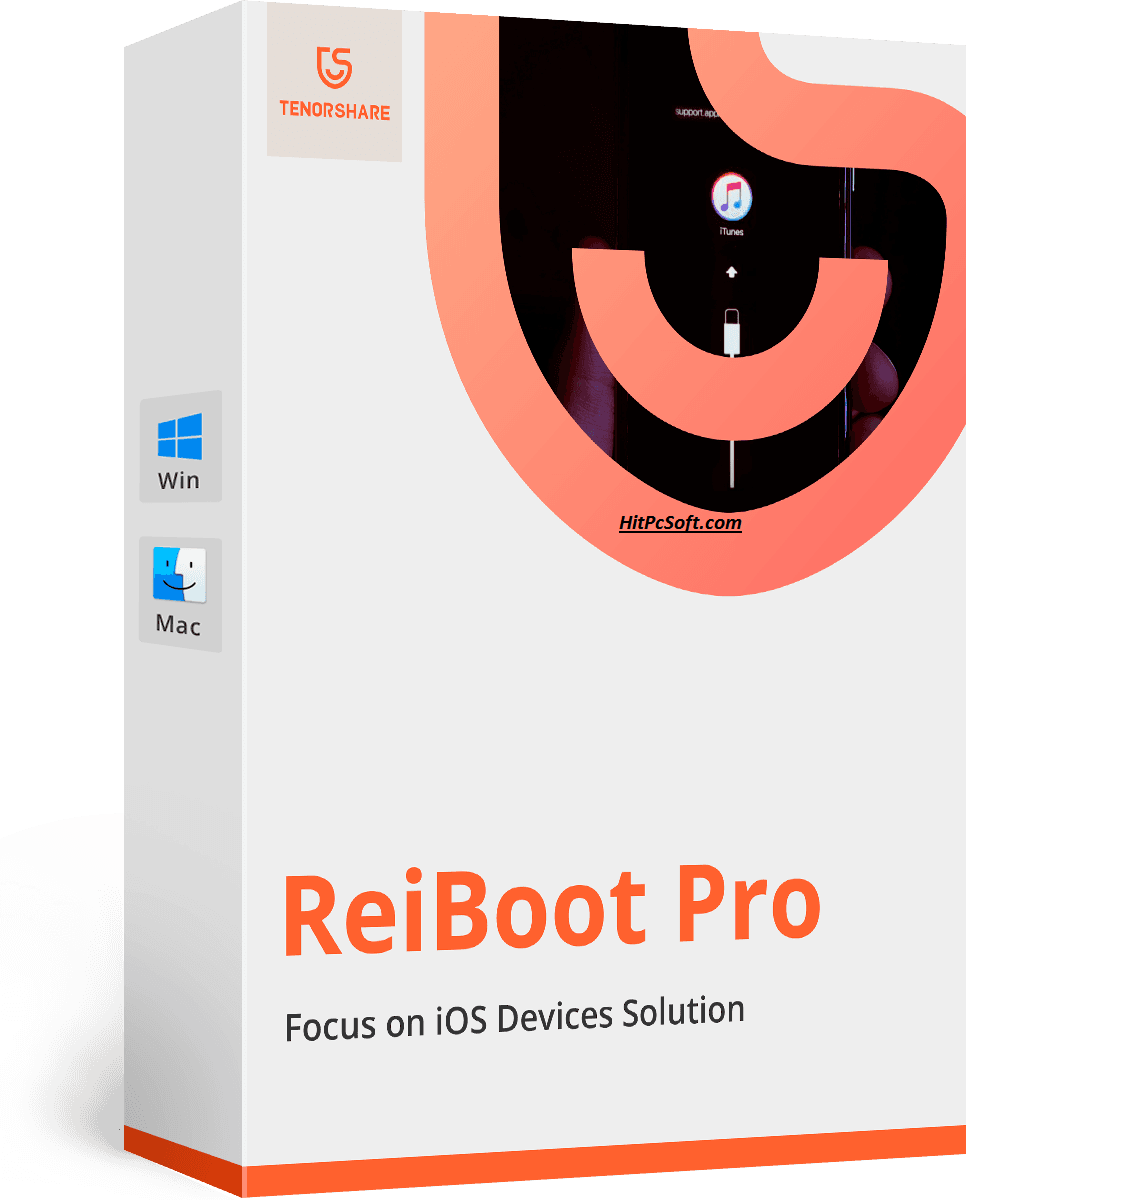 Tenorshare ReiBoot Pro Crack